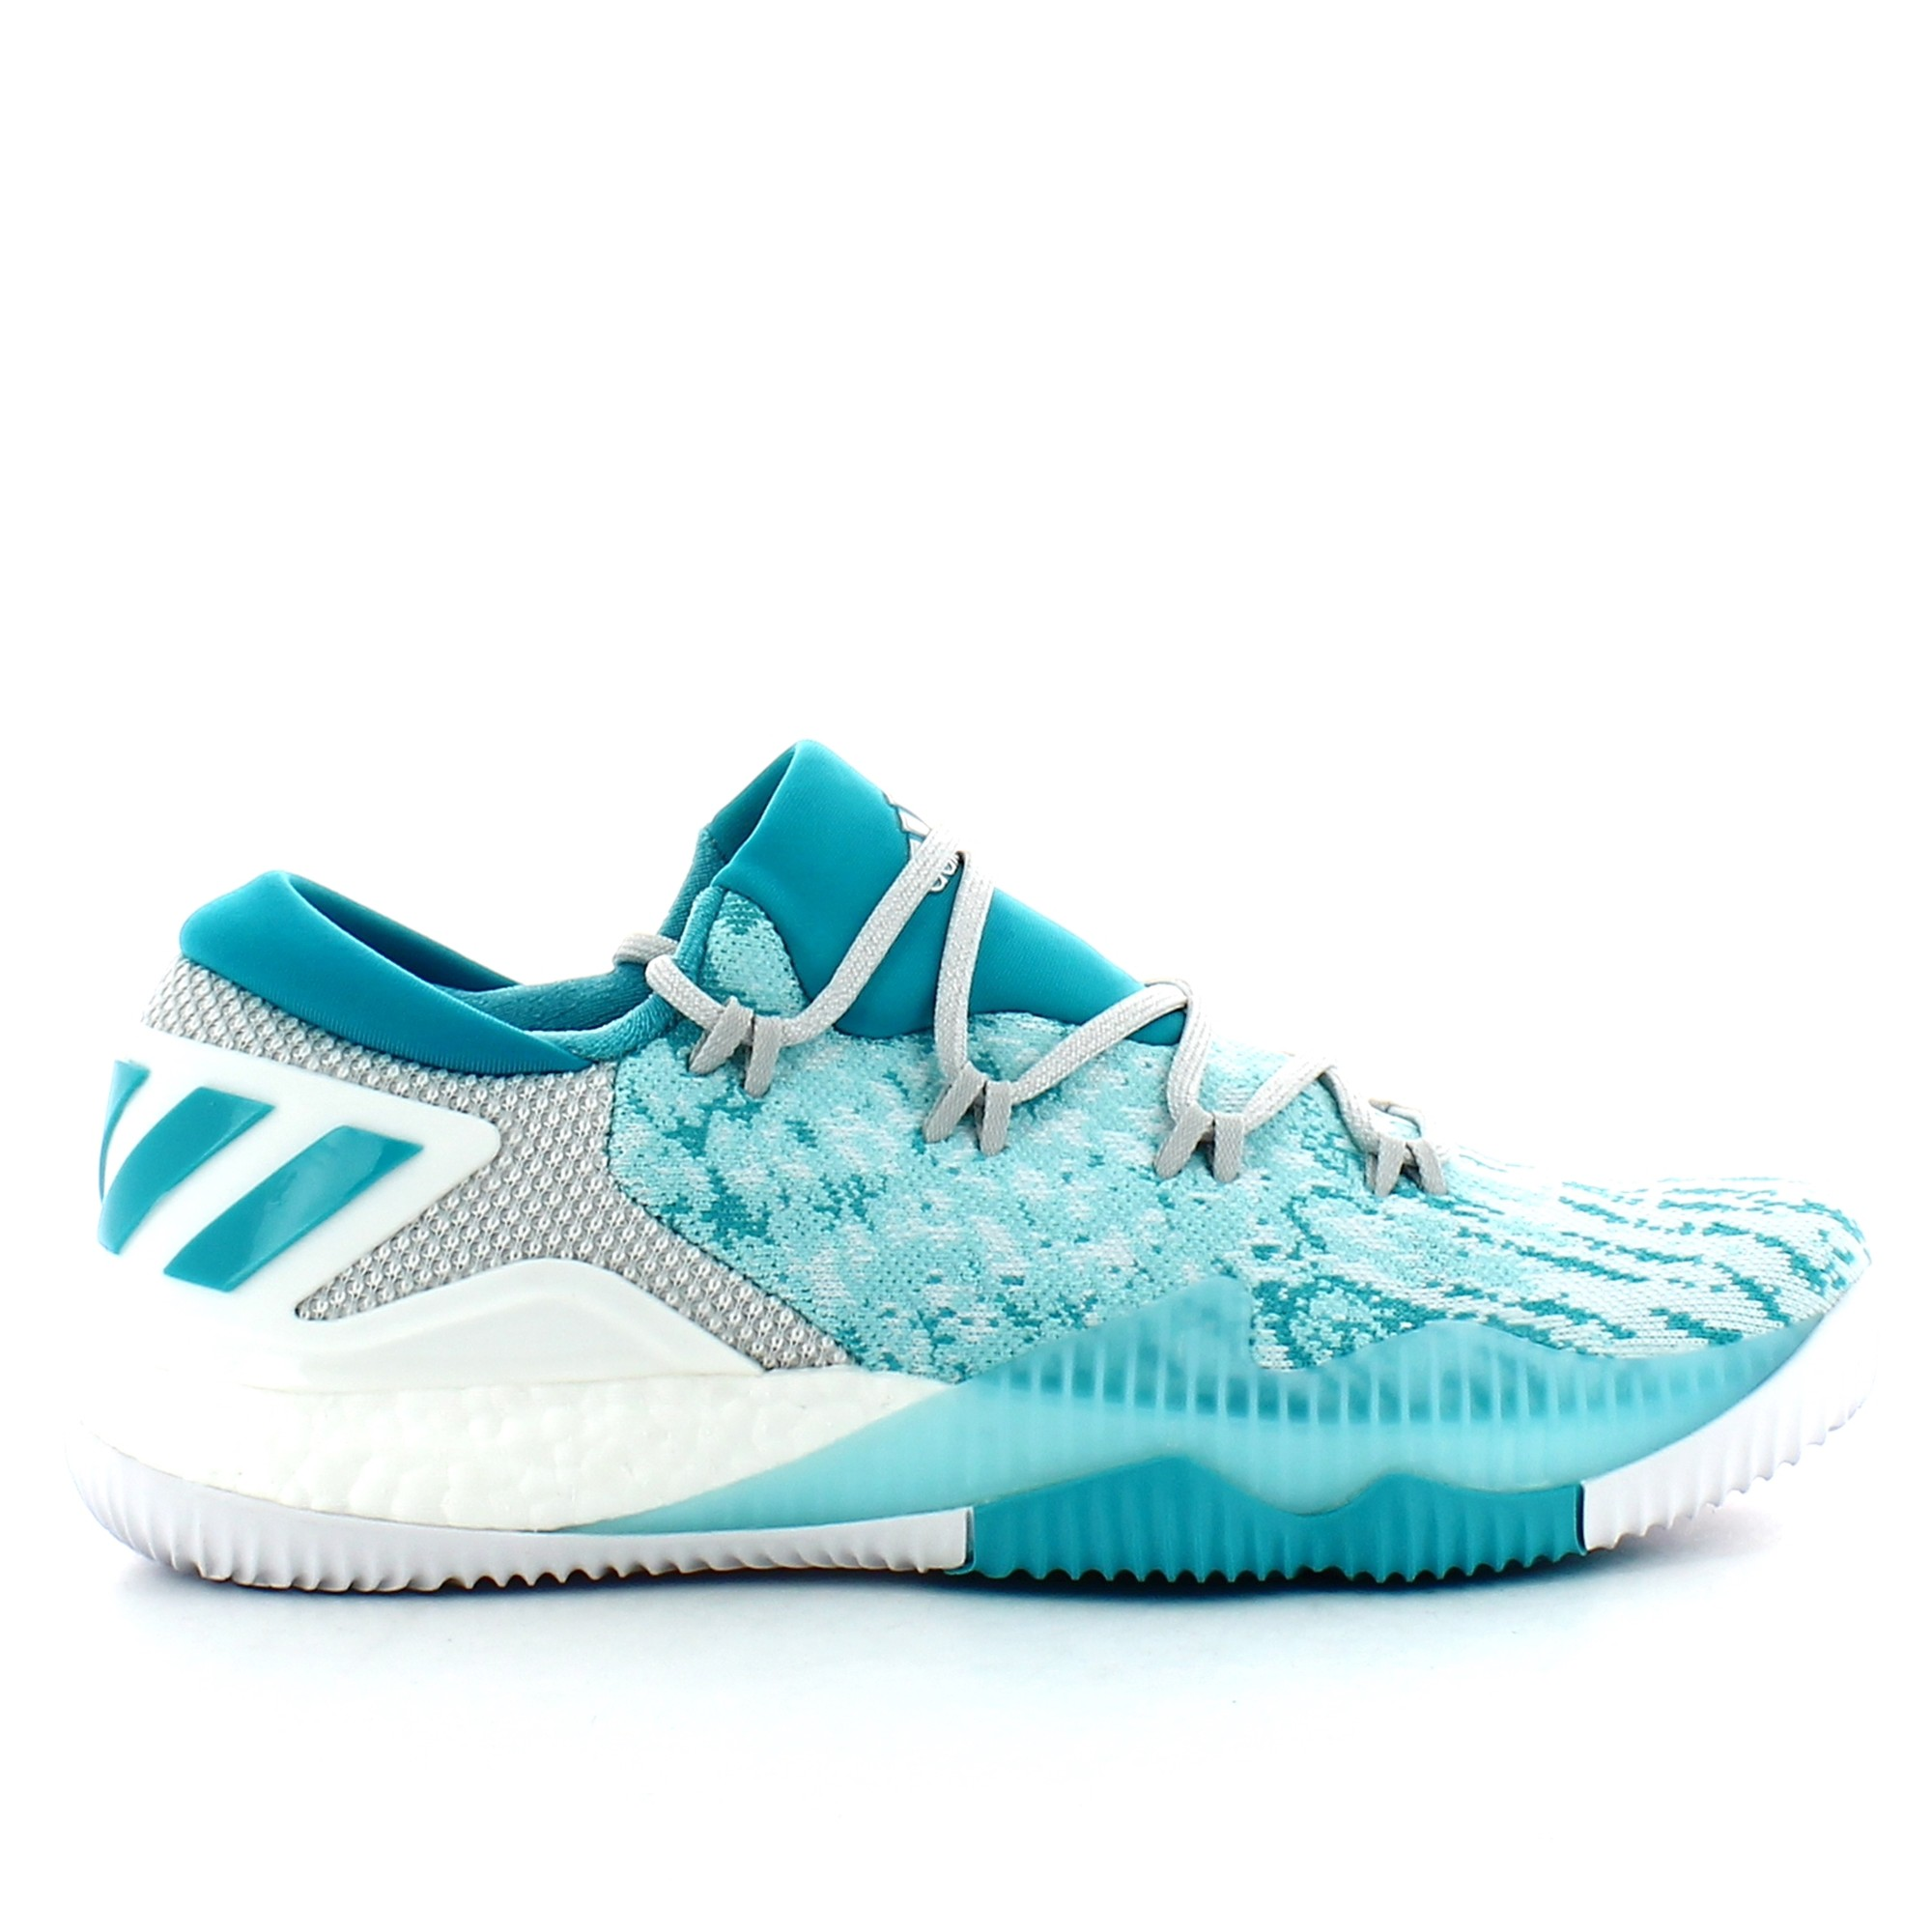 the best attitude 8ec20 cb65c Zapatillas Adidas Crazylight Boost Low 2016 Aguamarina - Dep